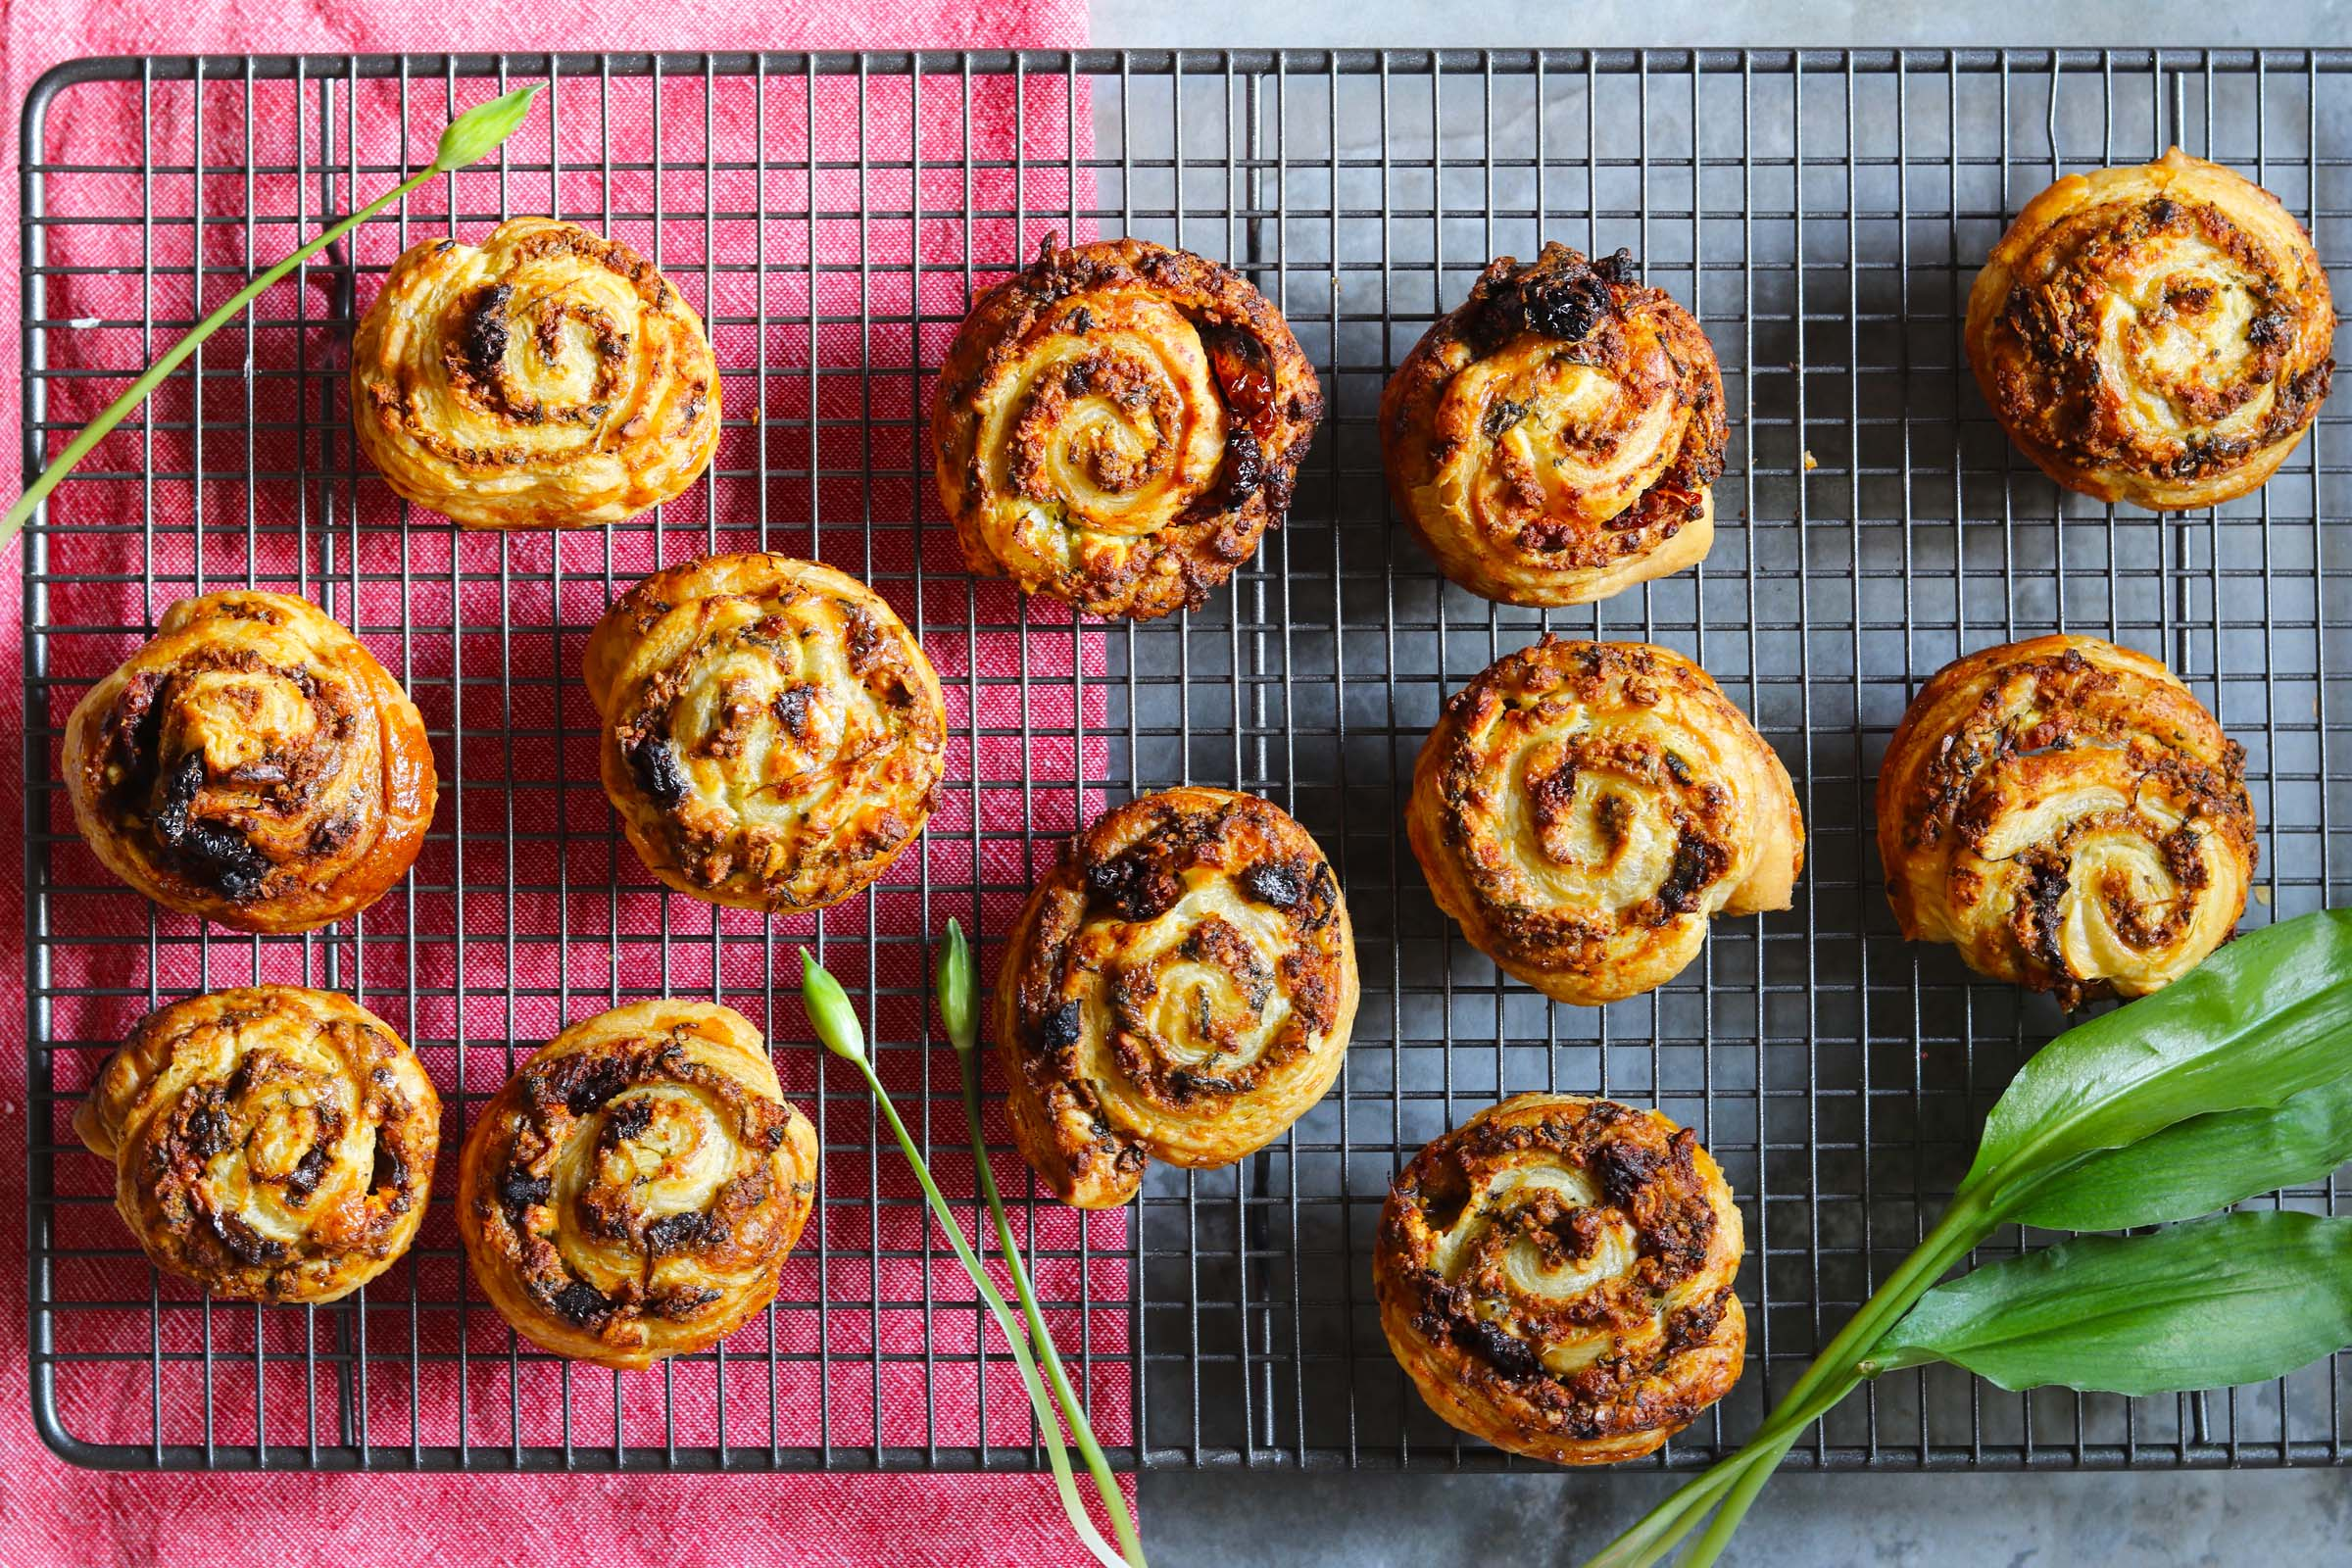 Feta & Sun Dried Tomato Swirls with Wild Garlic Pesto